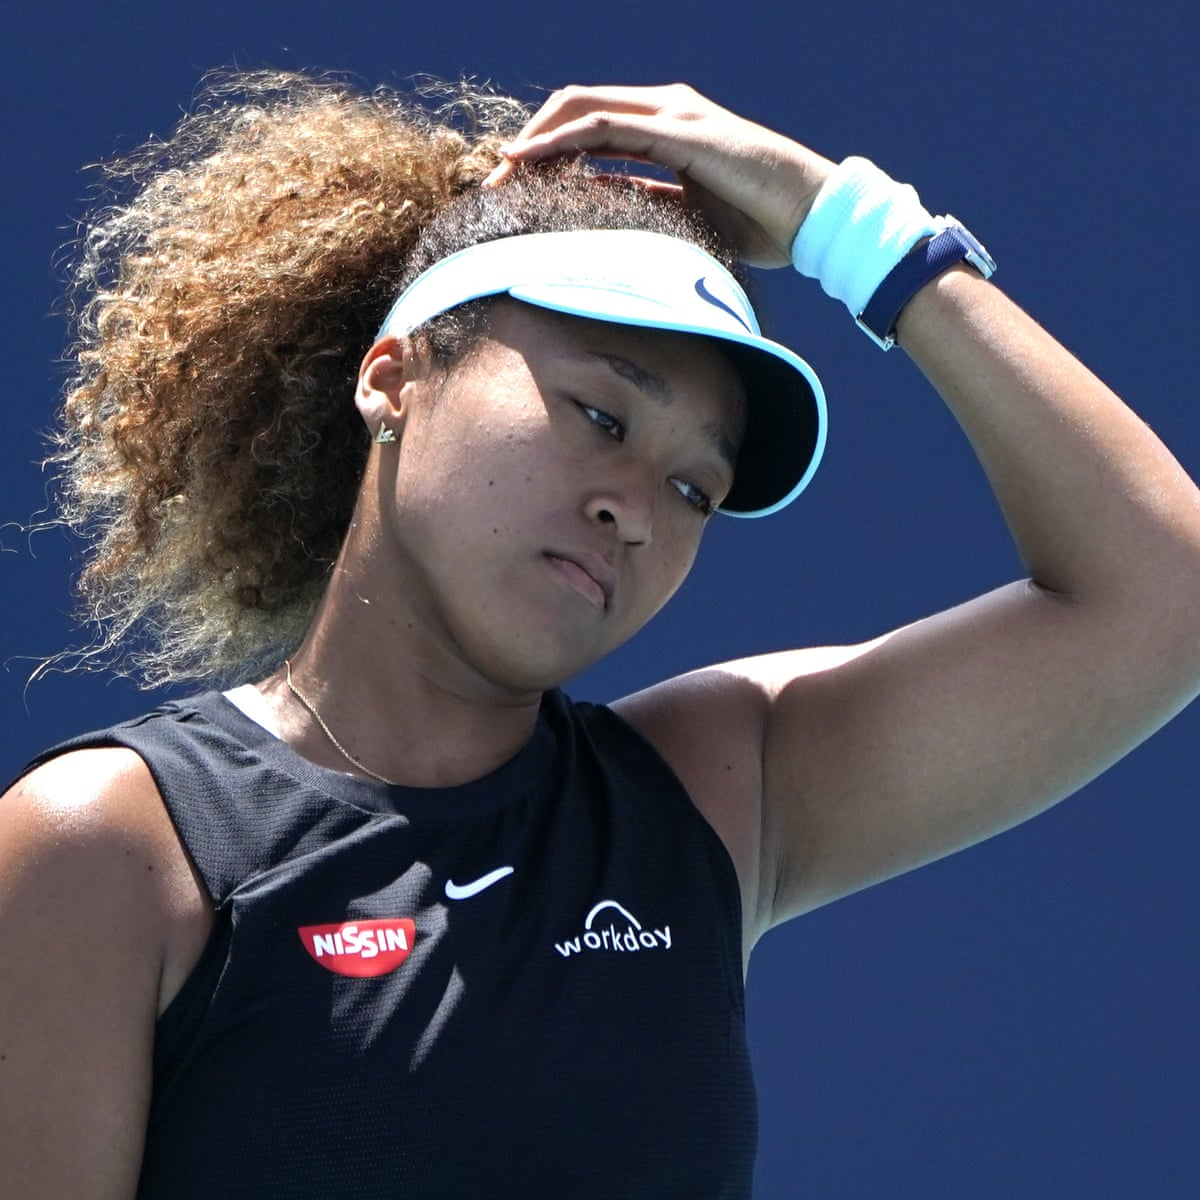 Courageous': Japanese athletes and sponsors voice support for Naomi Osaka | Naomi  Osaka | The Guardian